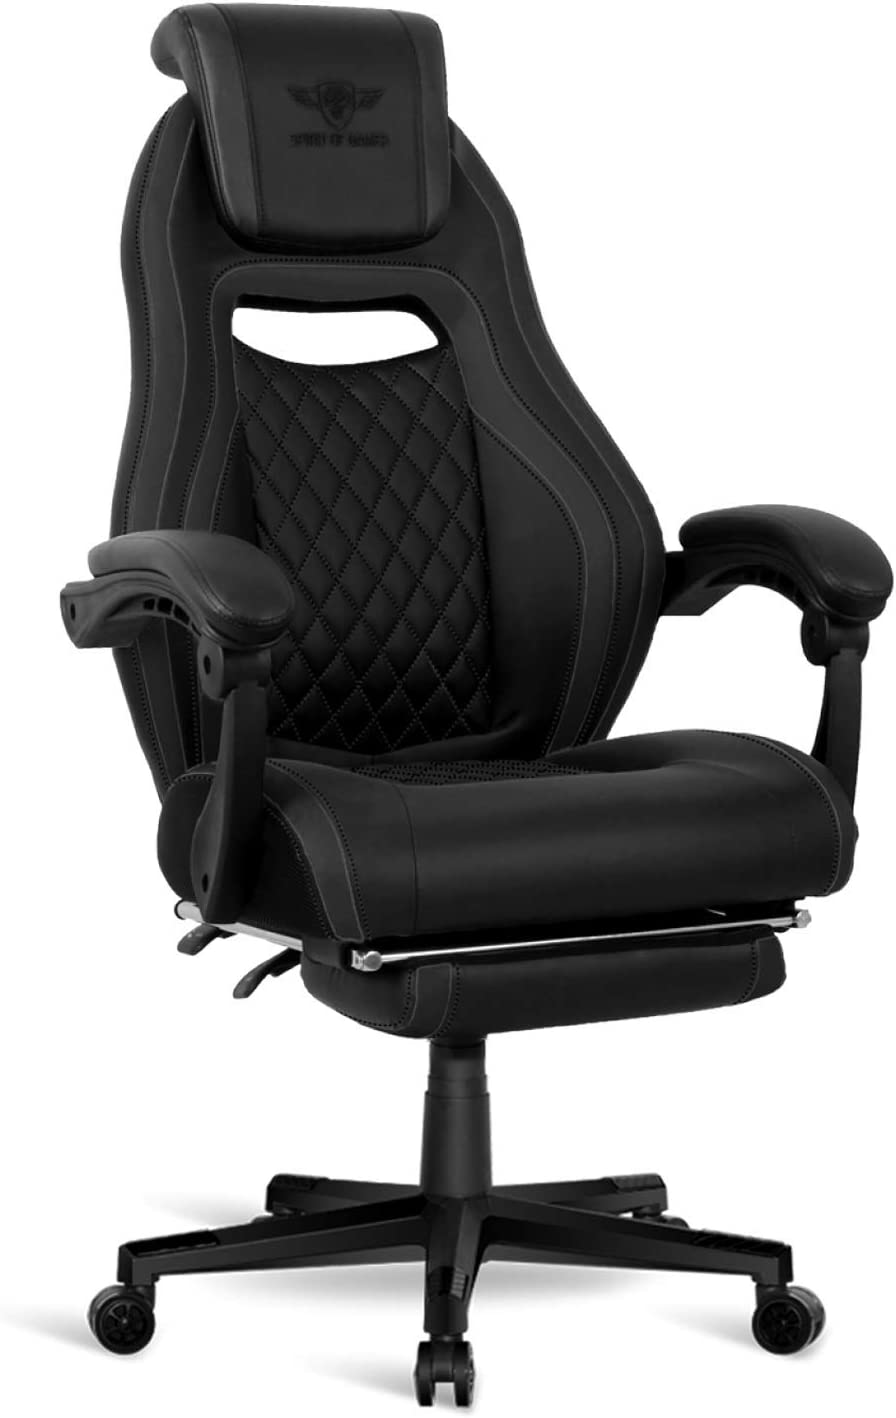 Accoudoirs Articul/és Spirit Of Gamer Chaise Gaming Fauteuil Gamer en Simili-Cuir Dossier R/églable /à 160/° Wildcat Series Play and Relax Repose Jambes Escamotable Noir